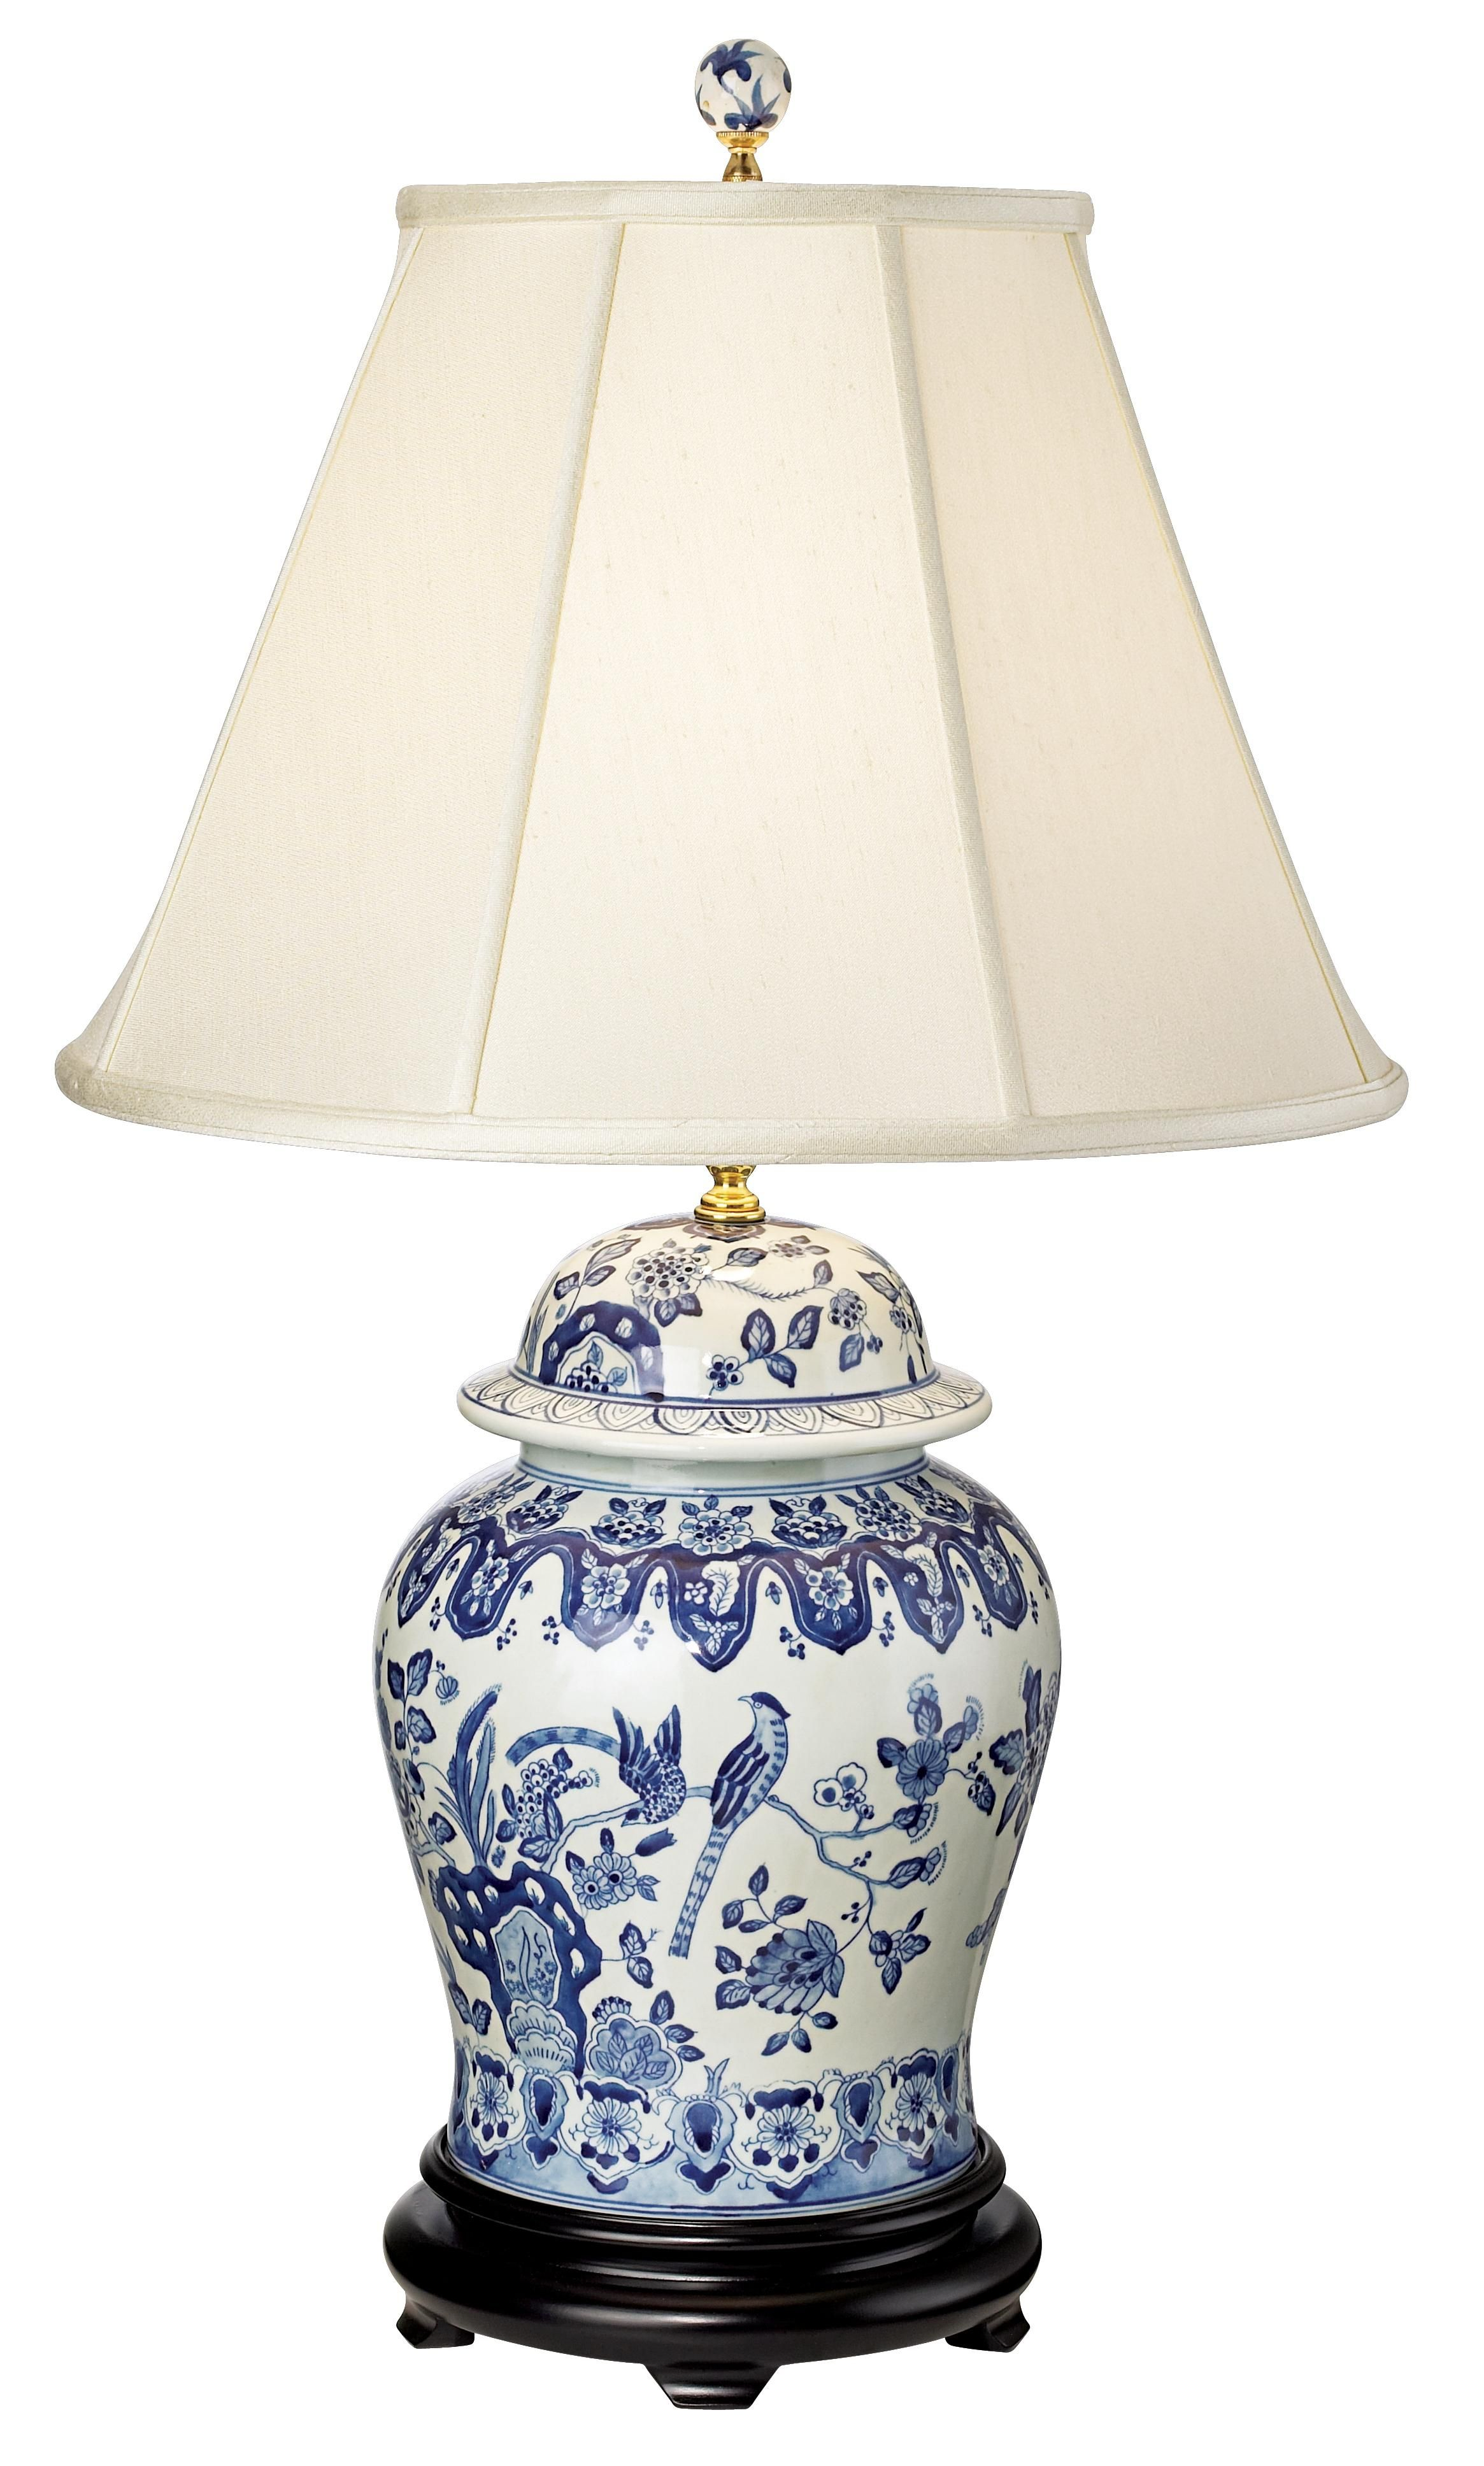 English floral hand painted porcelain ginger jar table lamp english floral hand painted porcelain ginger jar table lamp style k3344 geotapseo Image collections